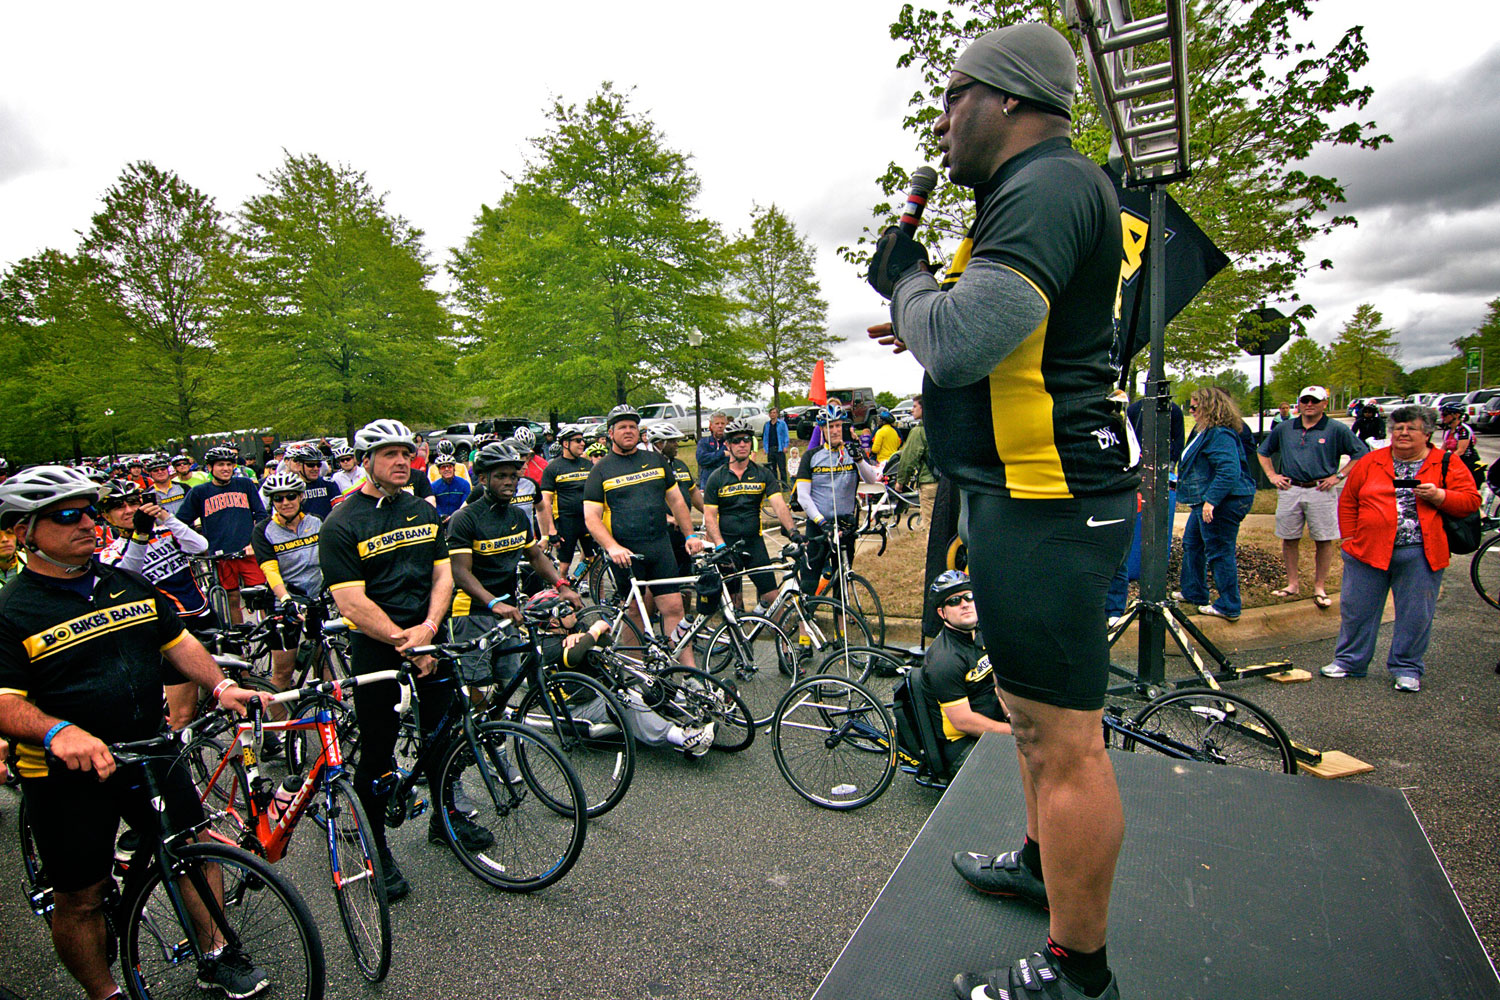 Bo Jackson and dozens of other riders embarked on the annual Bo Bikes Bama charity bike ride in Auburn, Alabama on A-Day, Saturday, April 19th. Participants chose whether to ride a 62-mile or 22-mile route. Both routes took riders through the campus of Auburn University, while the 62-mile route carried riders through Tuskegee and the neighboring Macon County.